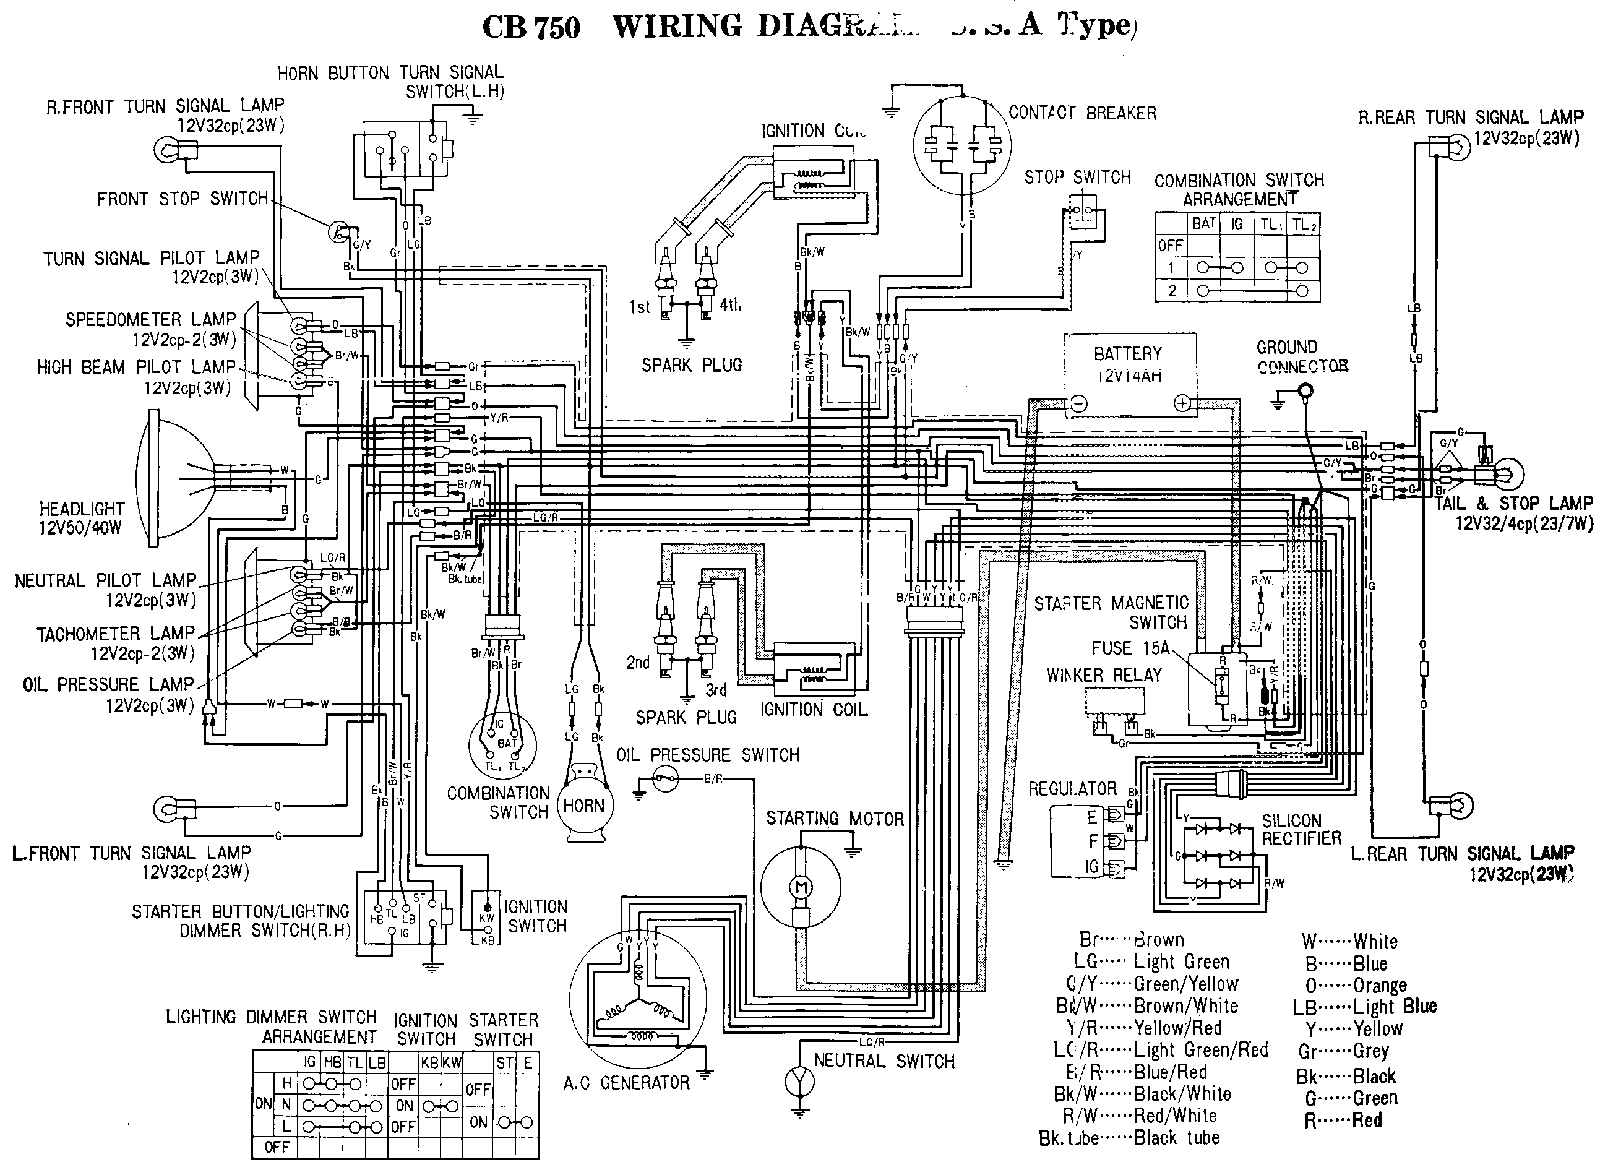 picture 6 of 6 from honda cb750 wiring diagrams cb radio microphone wiring diagram for a scher cb 750 f2 wiring diagram #8